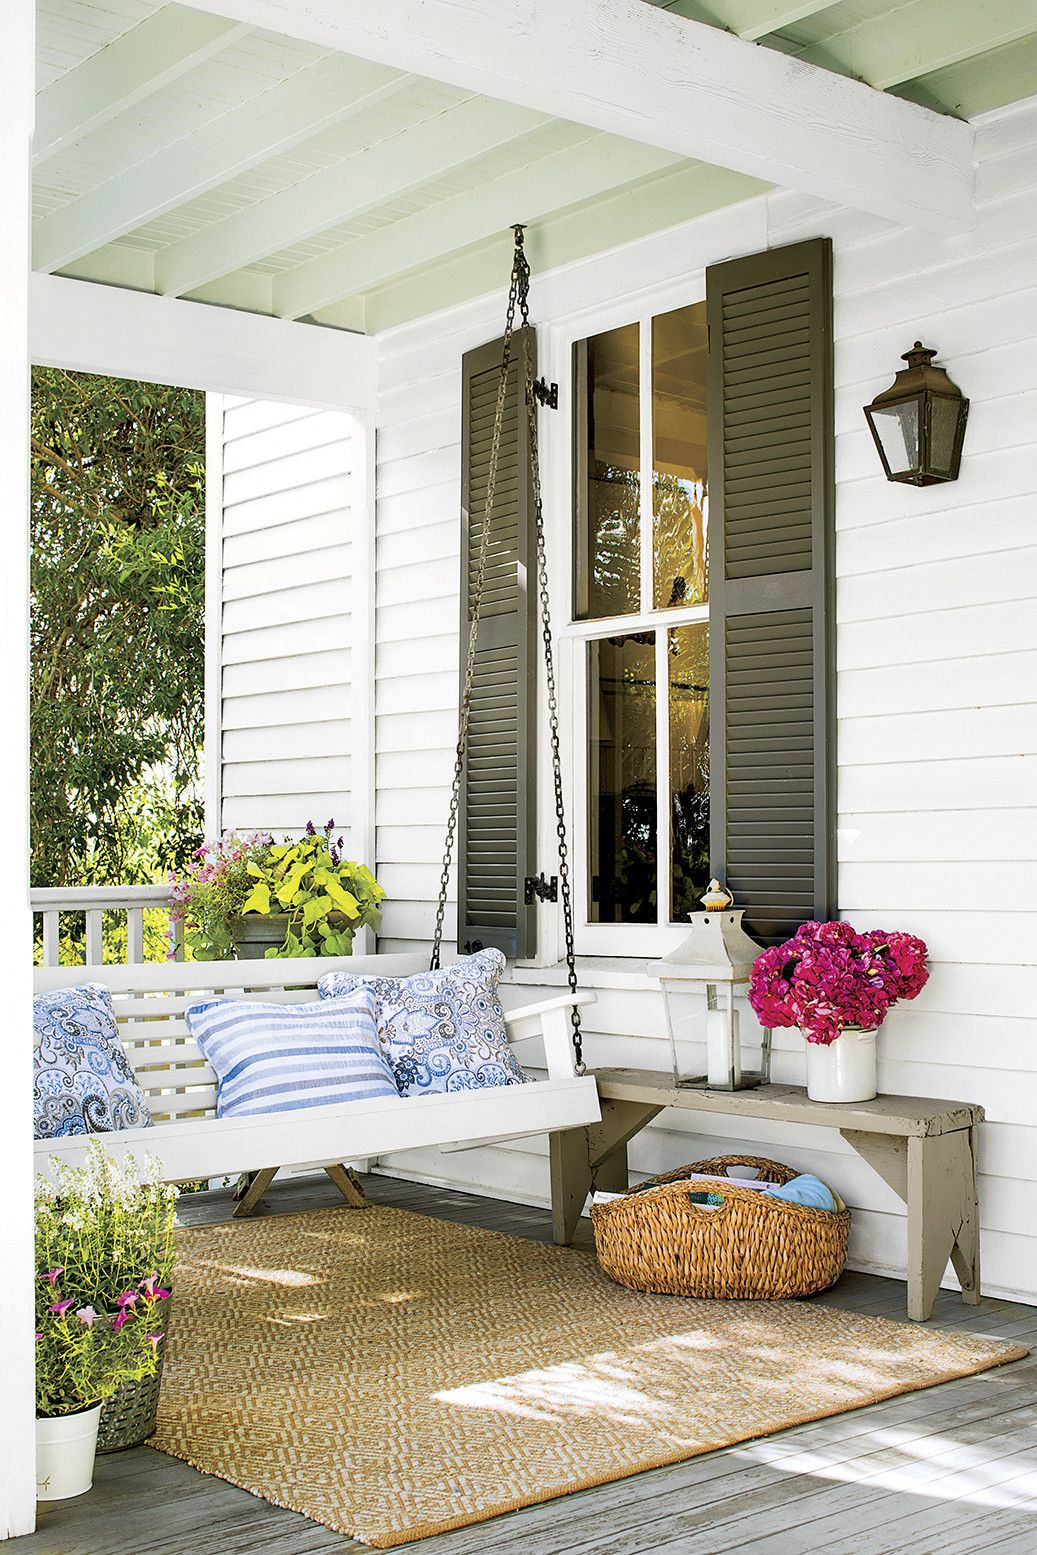 Cottage and vine monday inspiration pretty porch swings outdoor